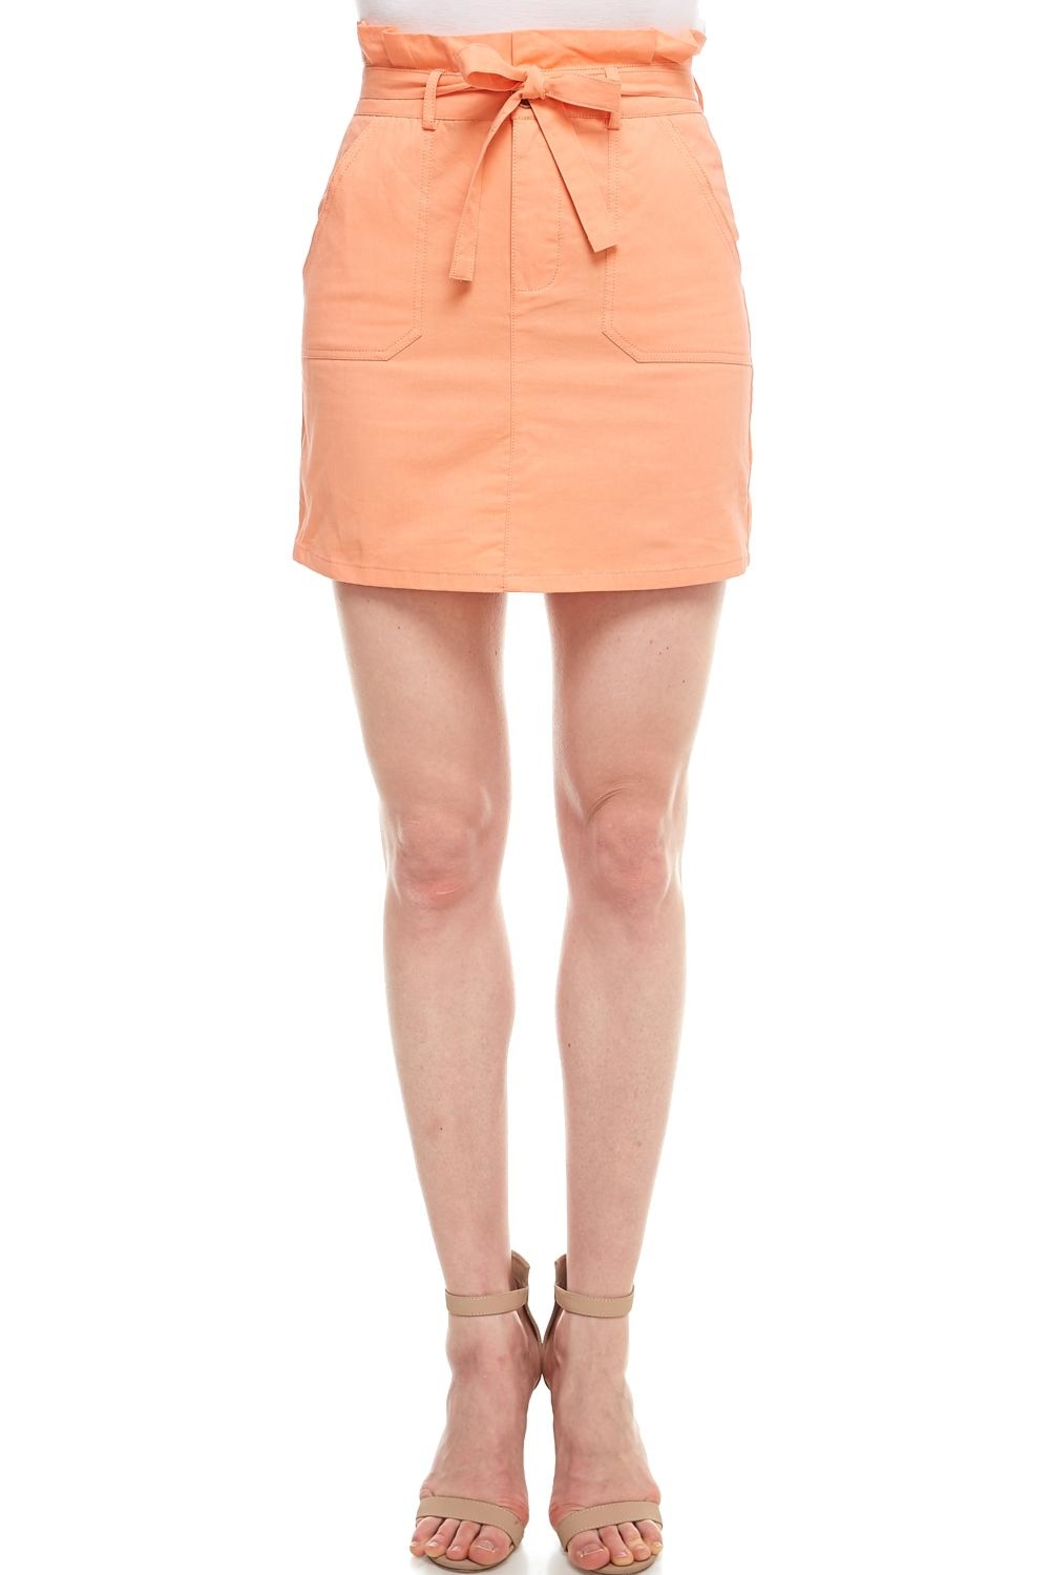 f4c7eea0f8c Sans Souci Tie Mini Skirt from New York by Dor L Dor — Shoptiques